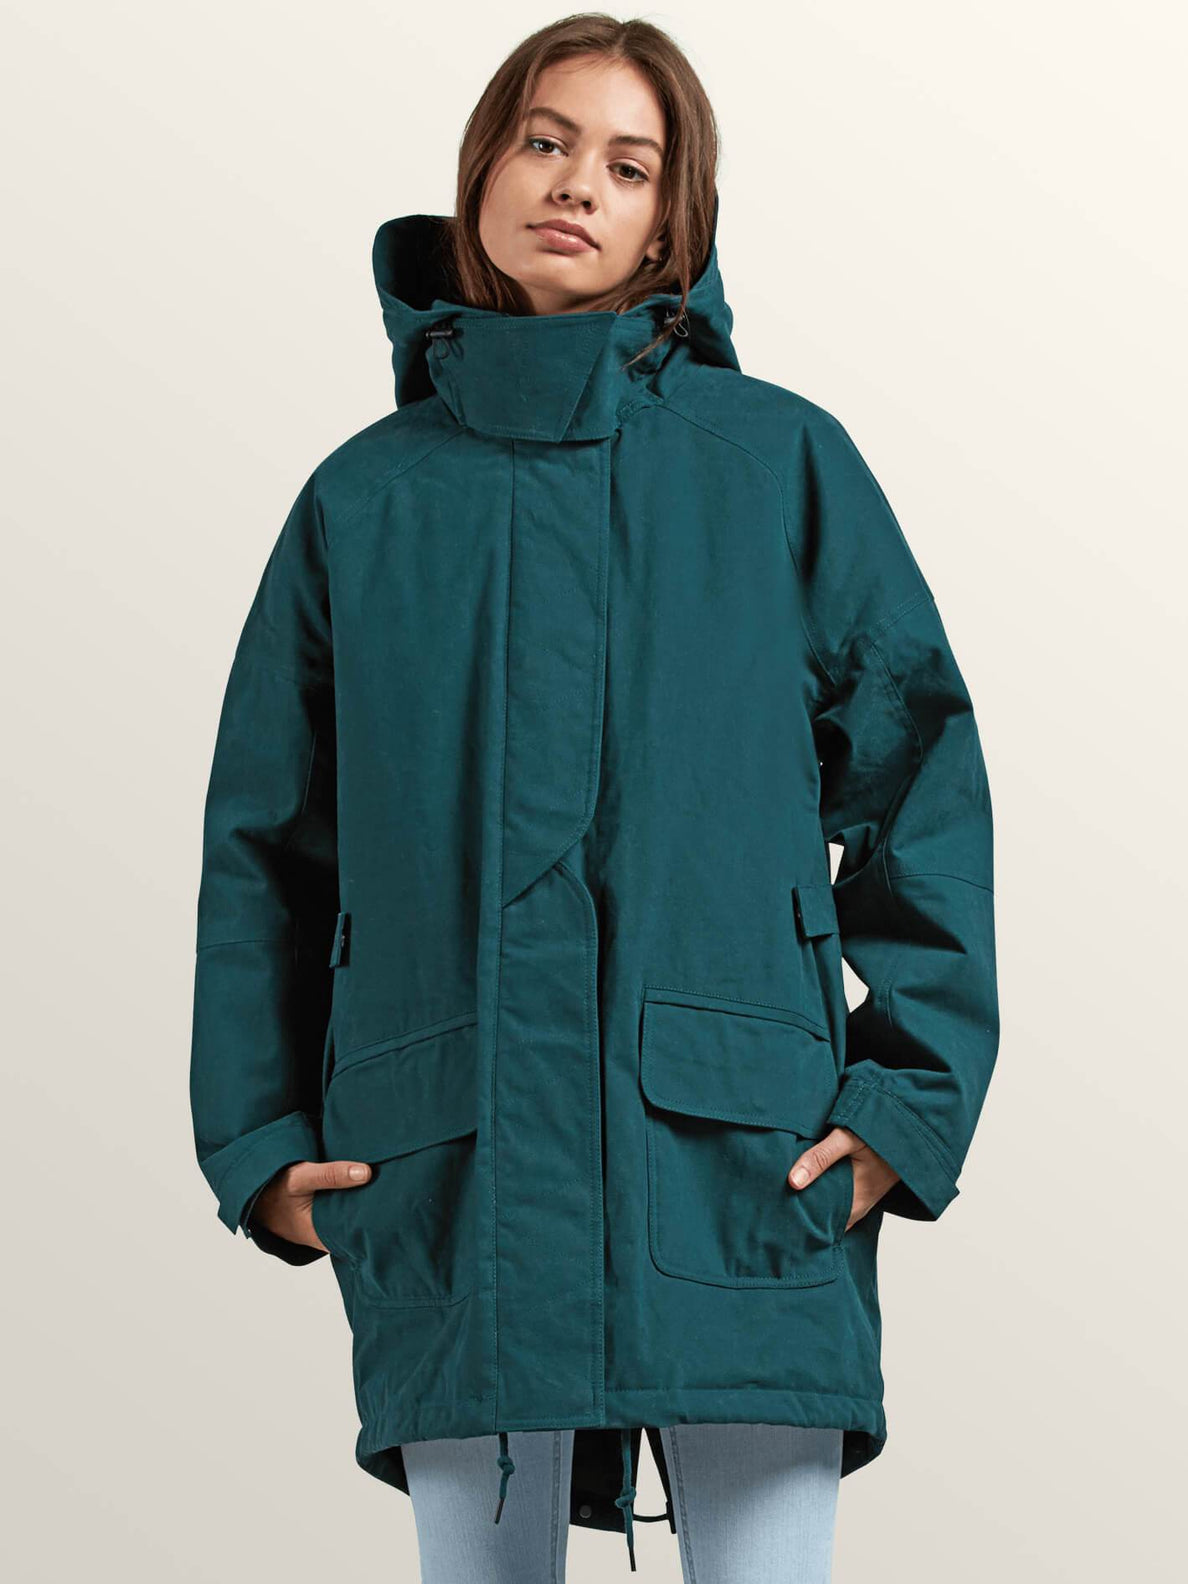 Volcover Parka In Evergreen, Second Alternate View